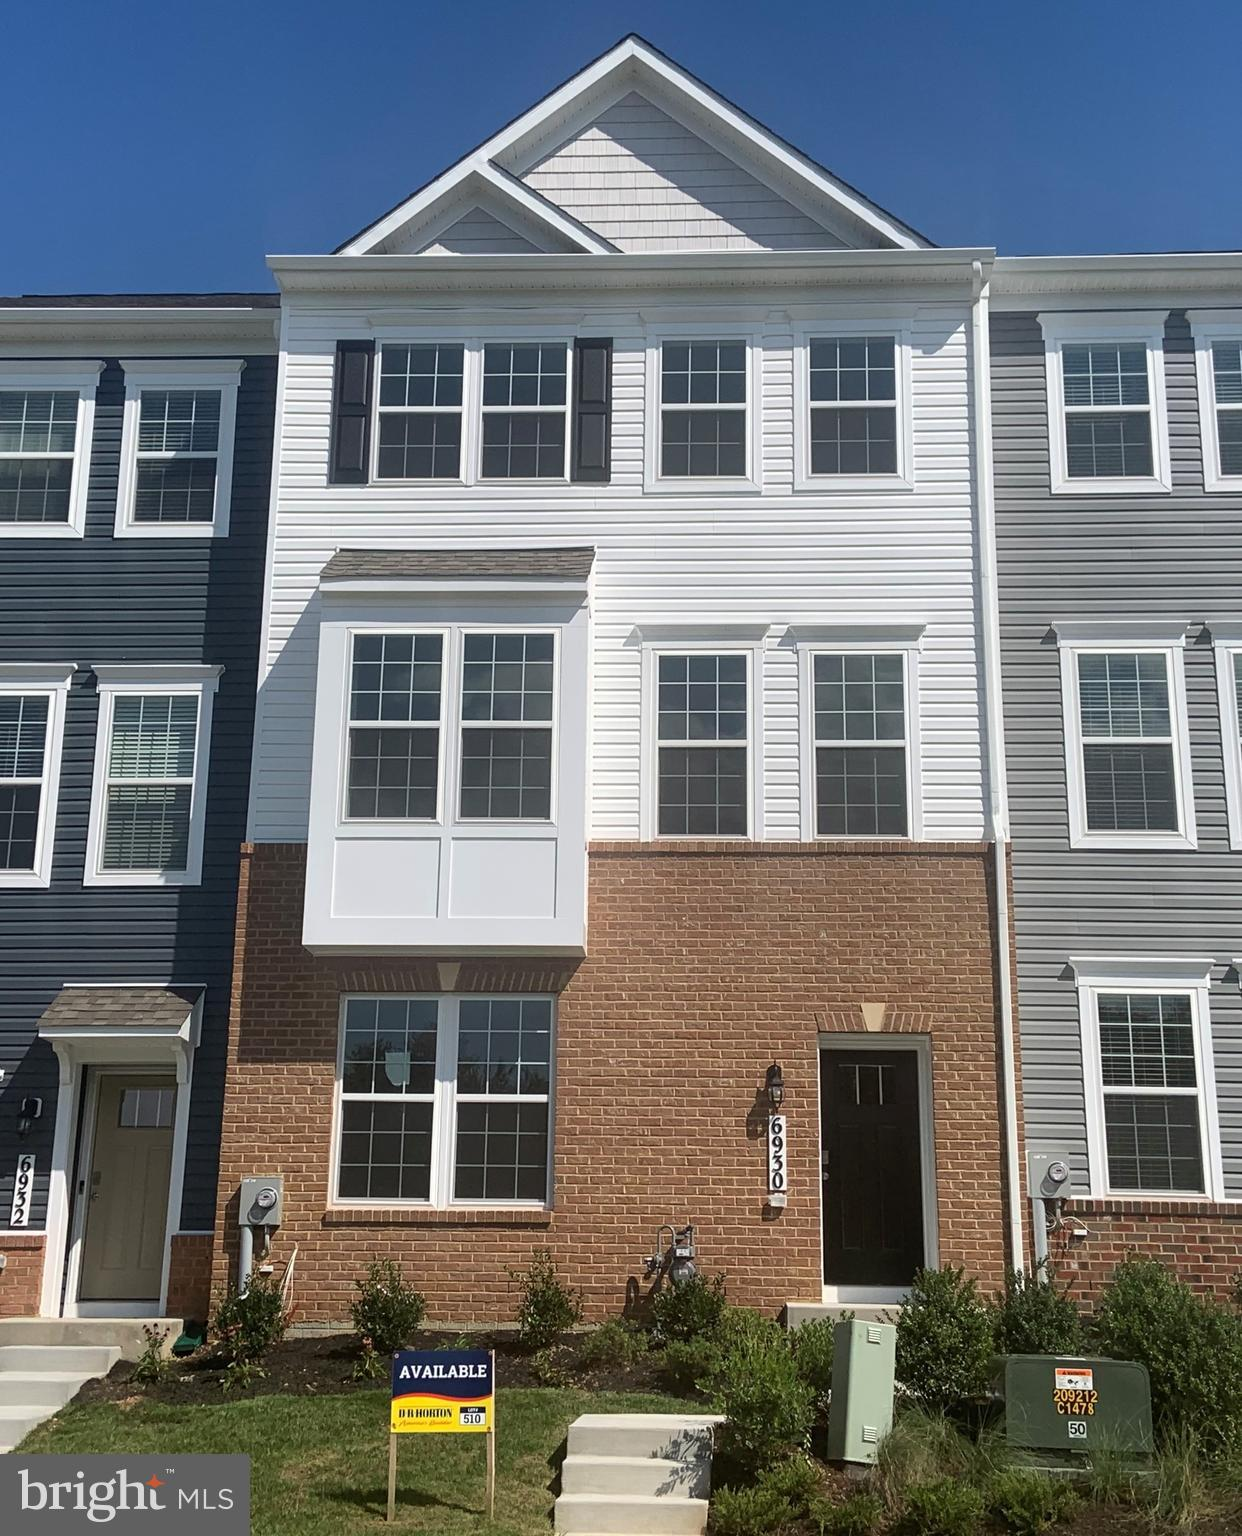 Brand new end unit townhome available for early fall delivery! This 3 level, 2,150 sq ft townhome ha